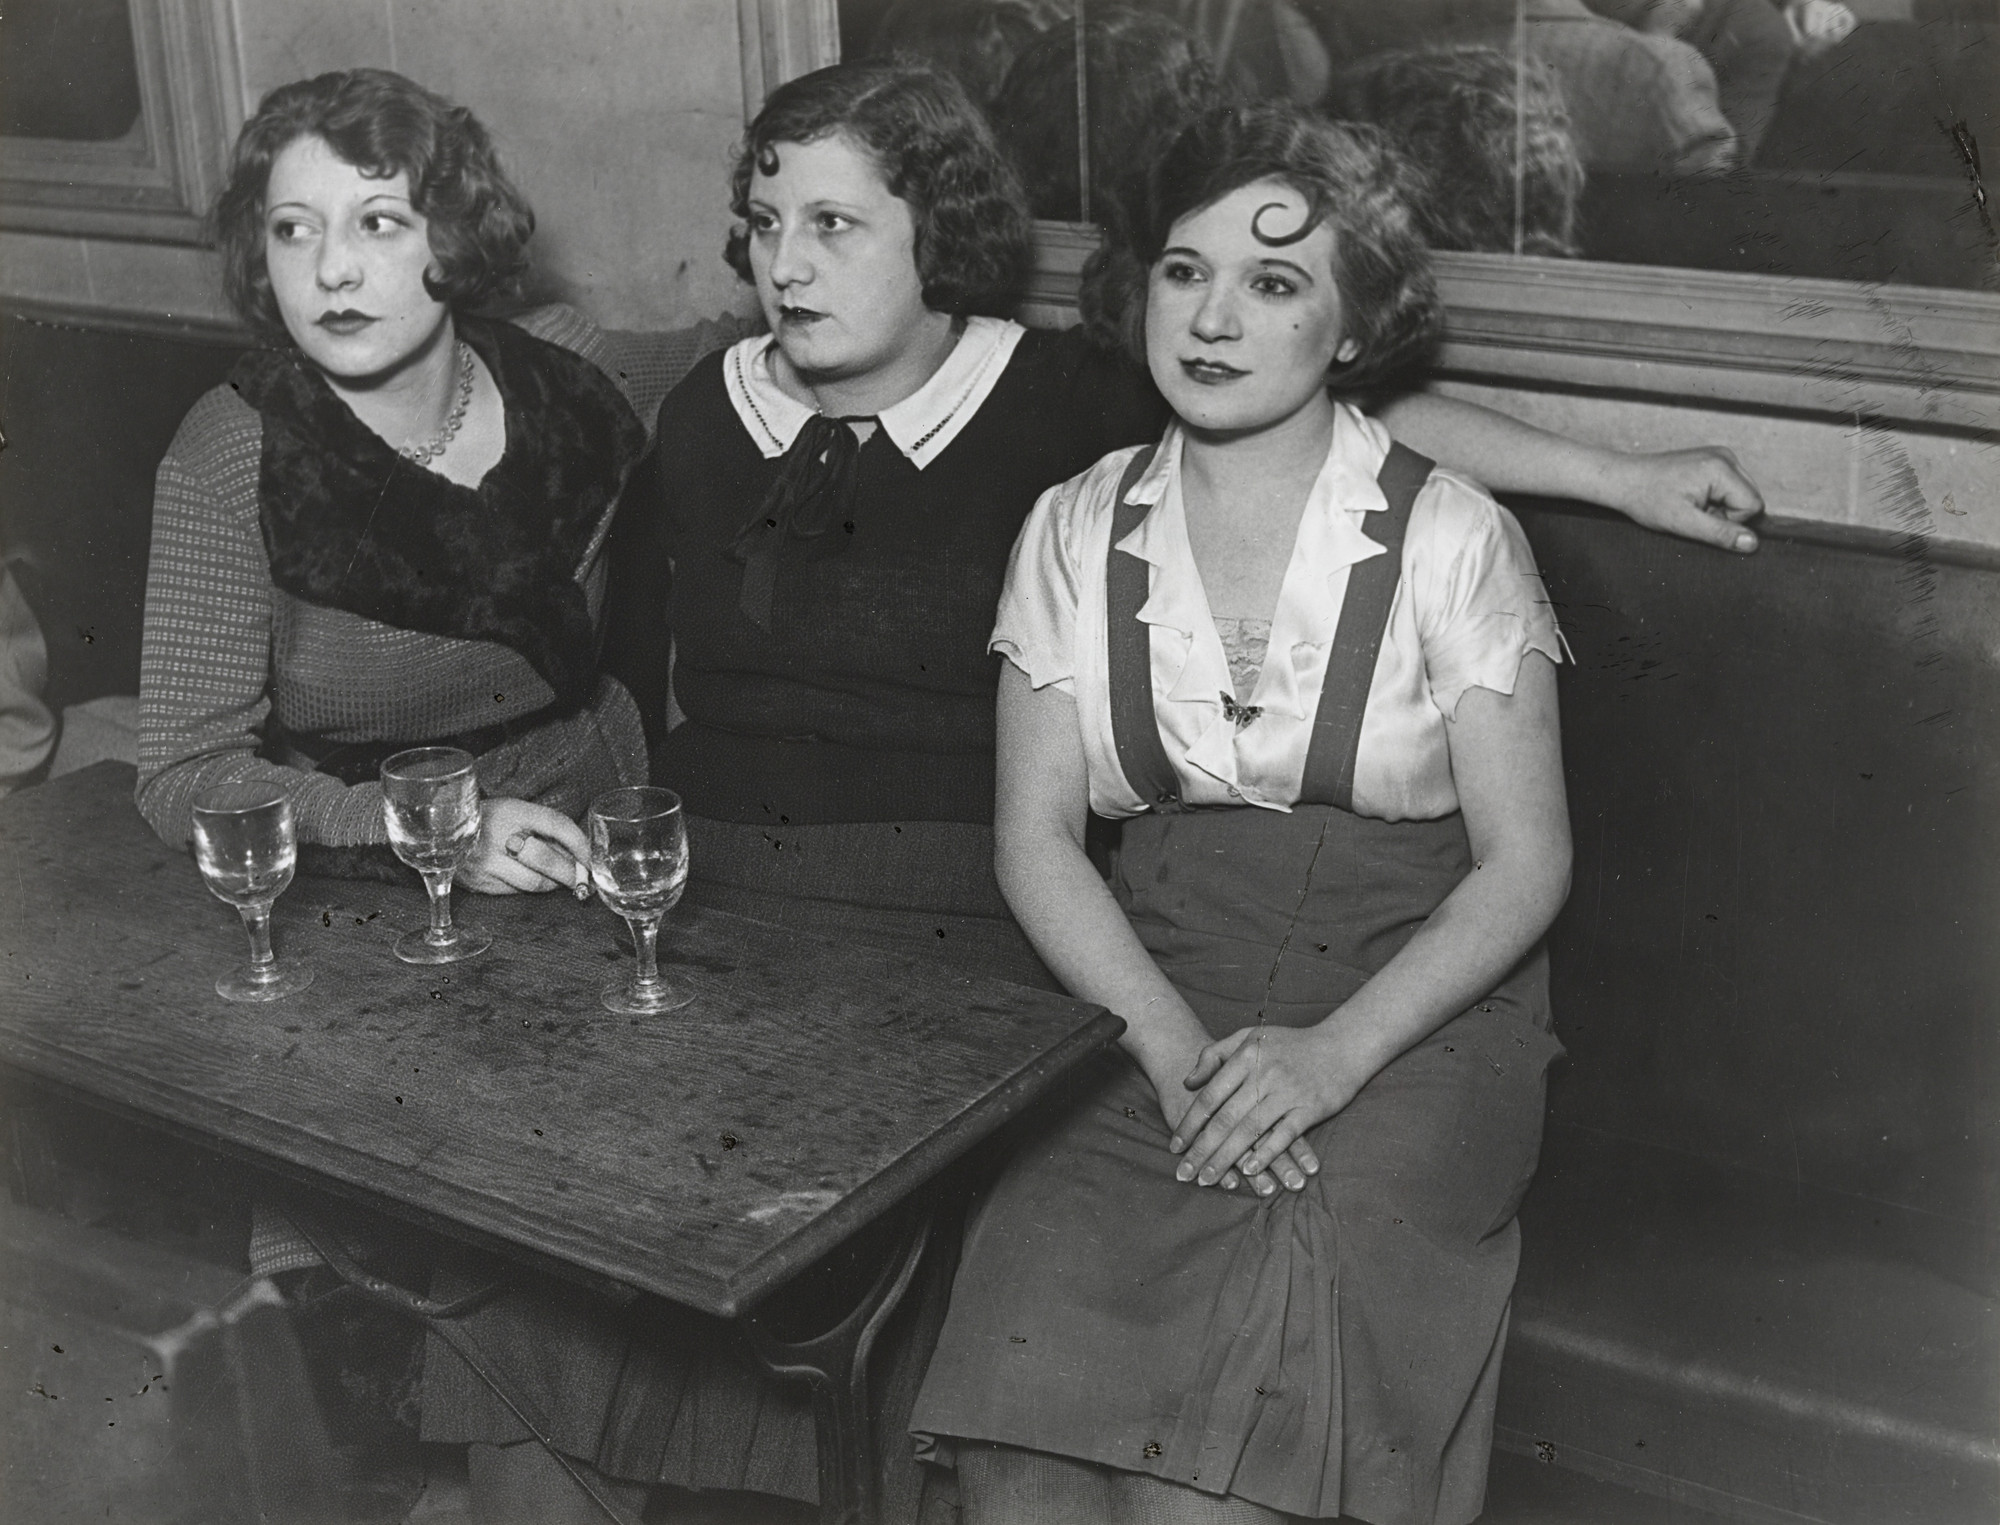 Brassaï (Gyula Halász). Three Girls, Dance Hall, rue de Lappe. 1932